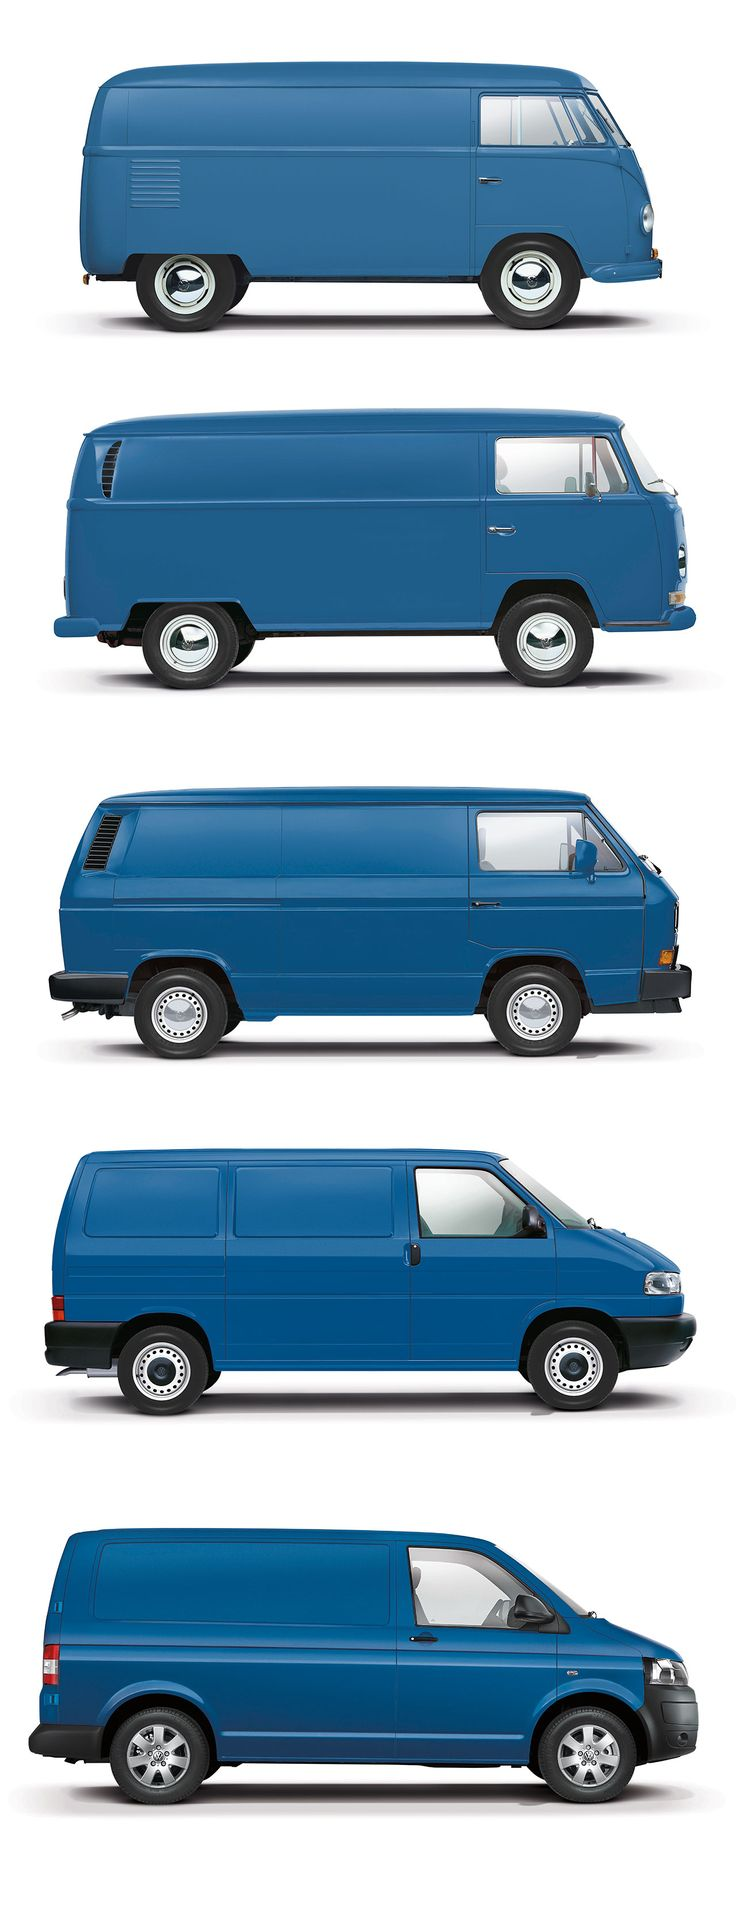 Sixth-gen Volkswagen Transporter previewed in design render - Car Body Design - | ⇆ 234| uk| https://www.pinterest.com/genashev/vw-t3/